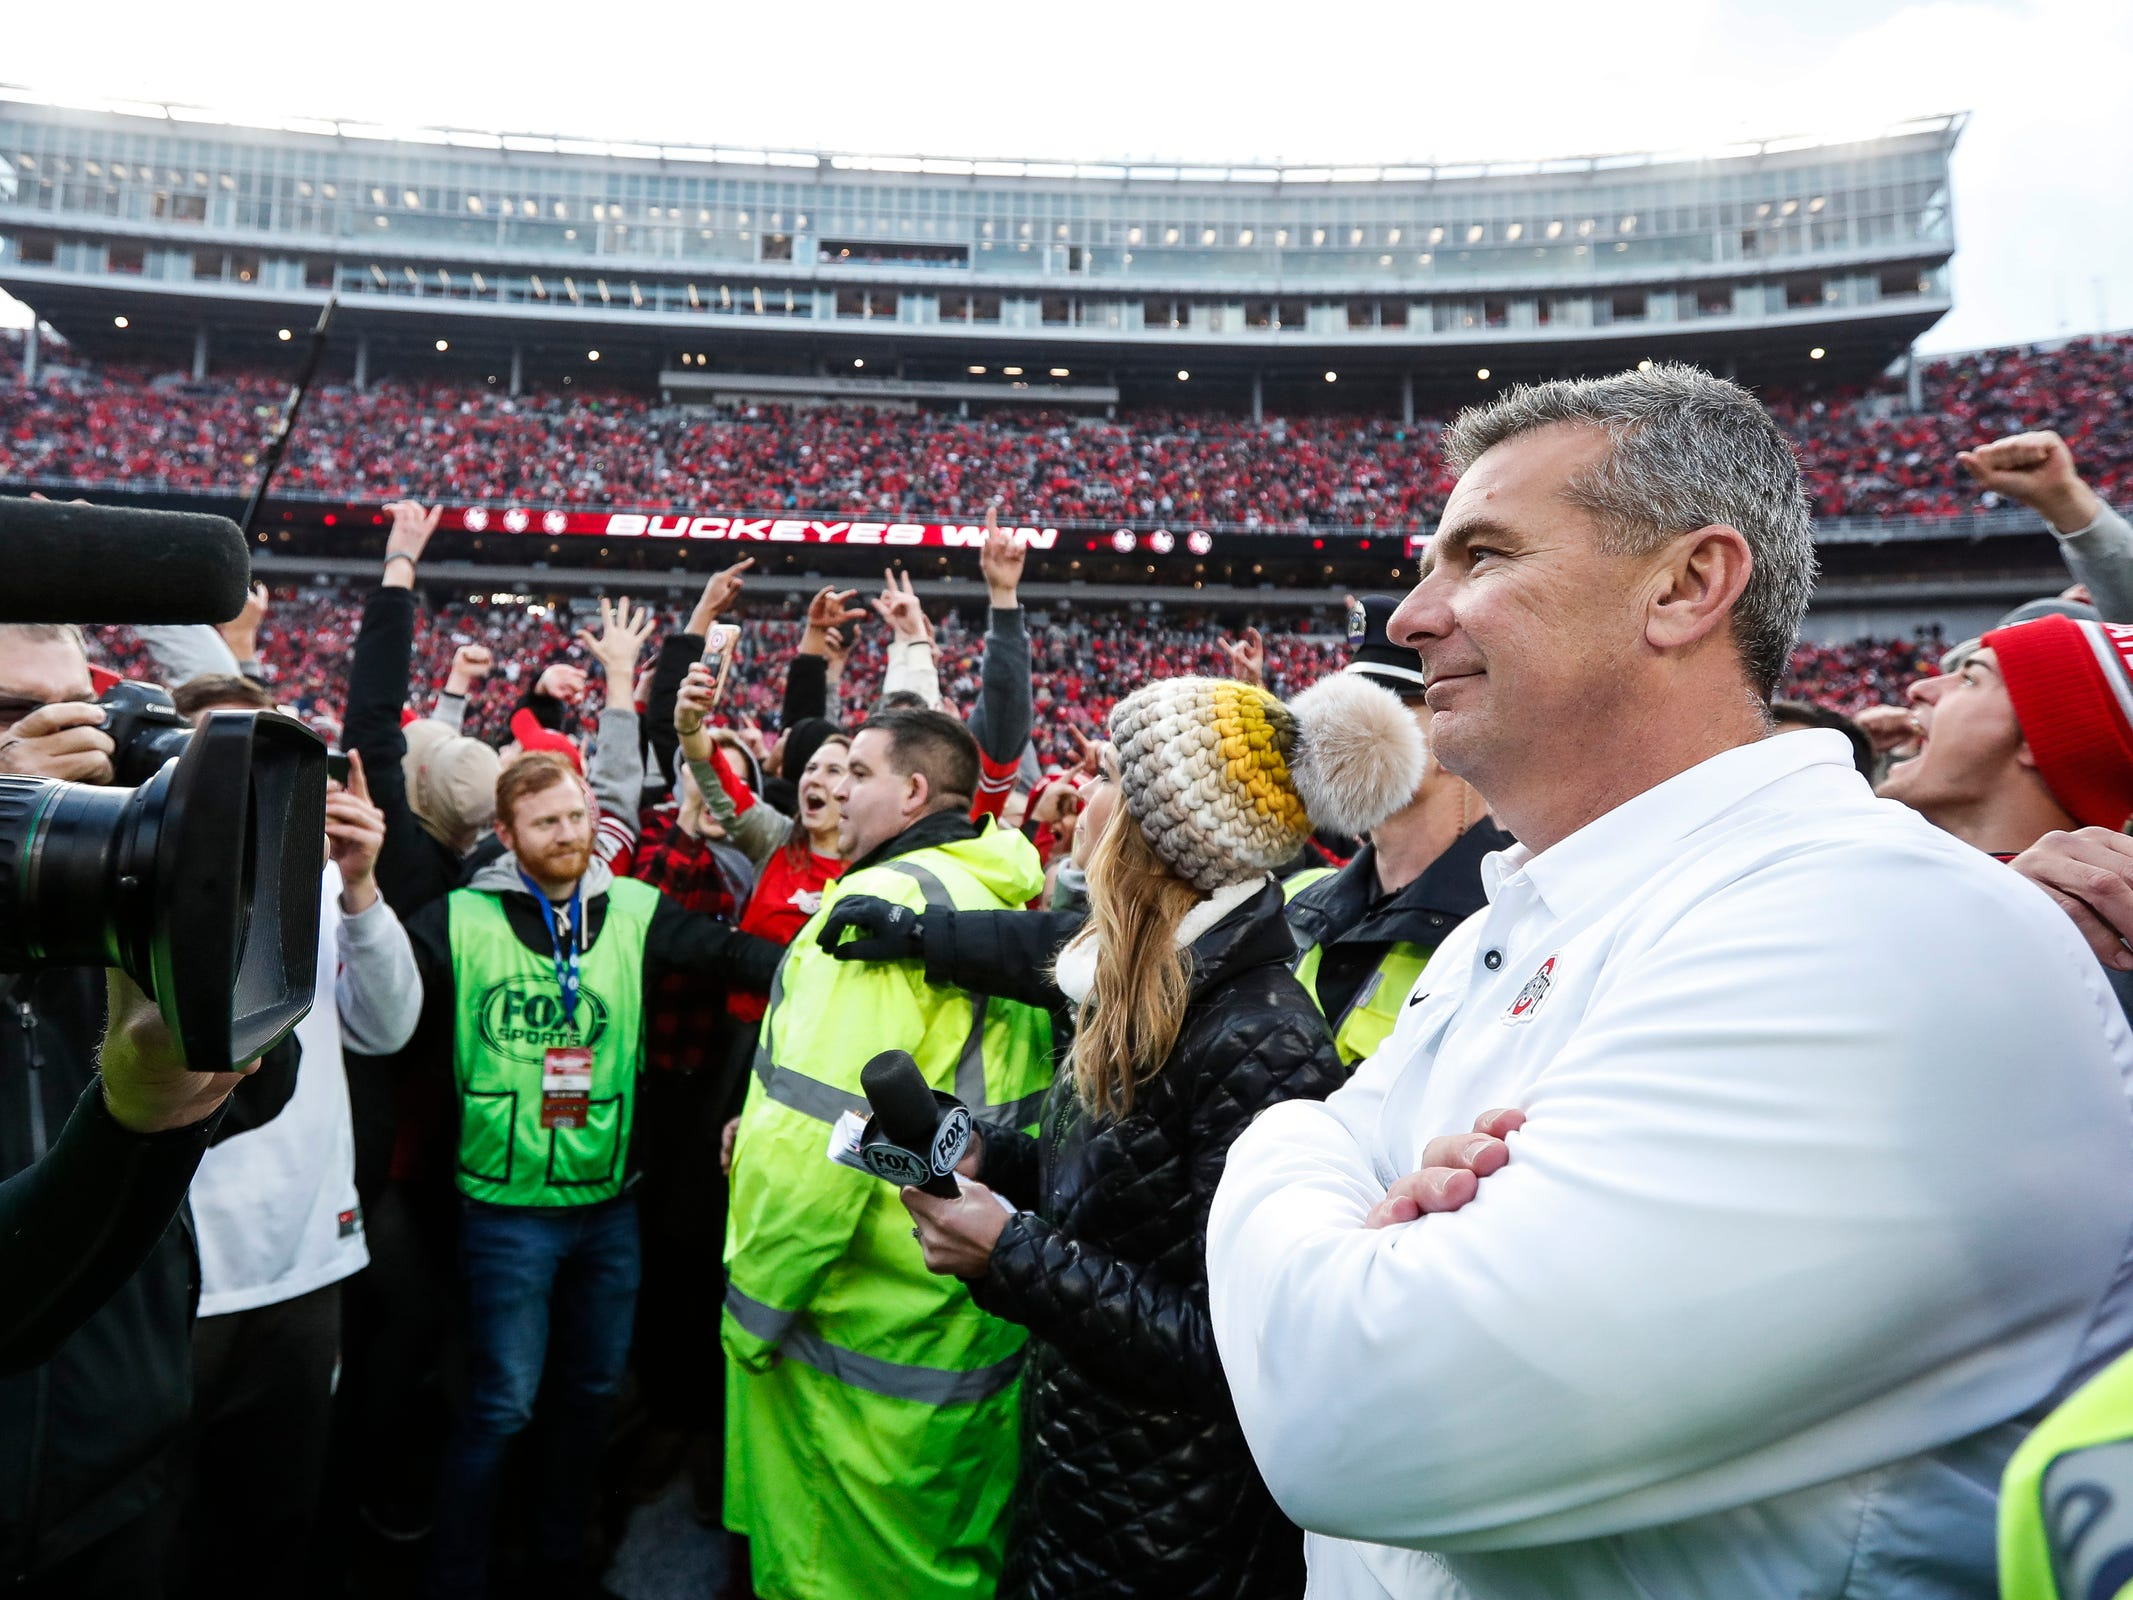 Isn't it clear? Michigan won't top Ohio State until Urban Meyer leaves